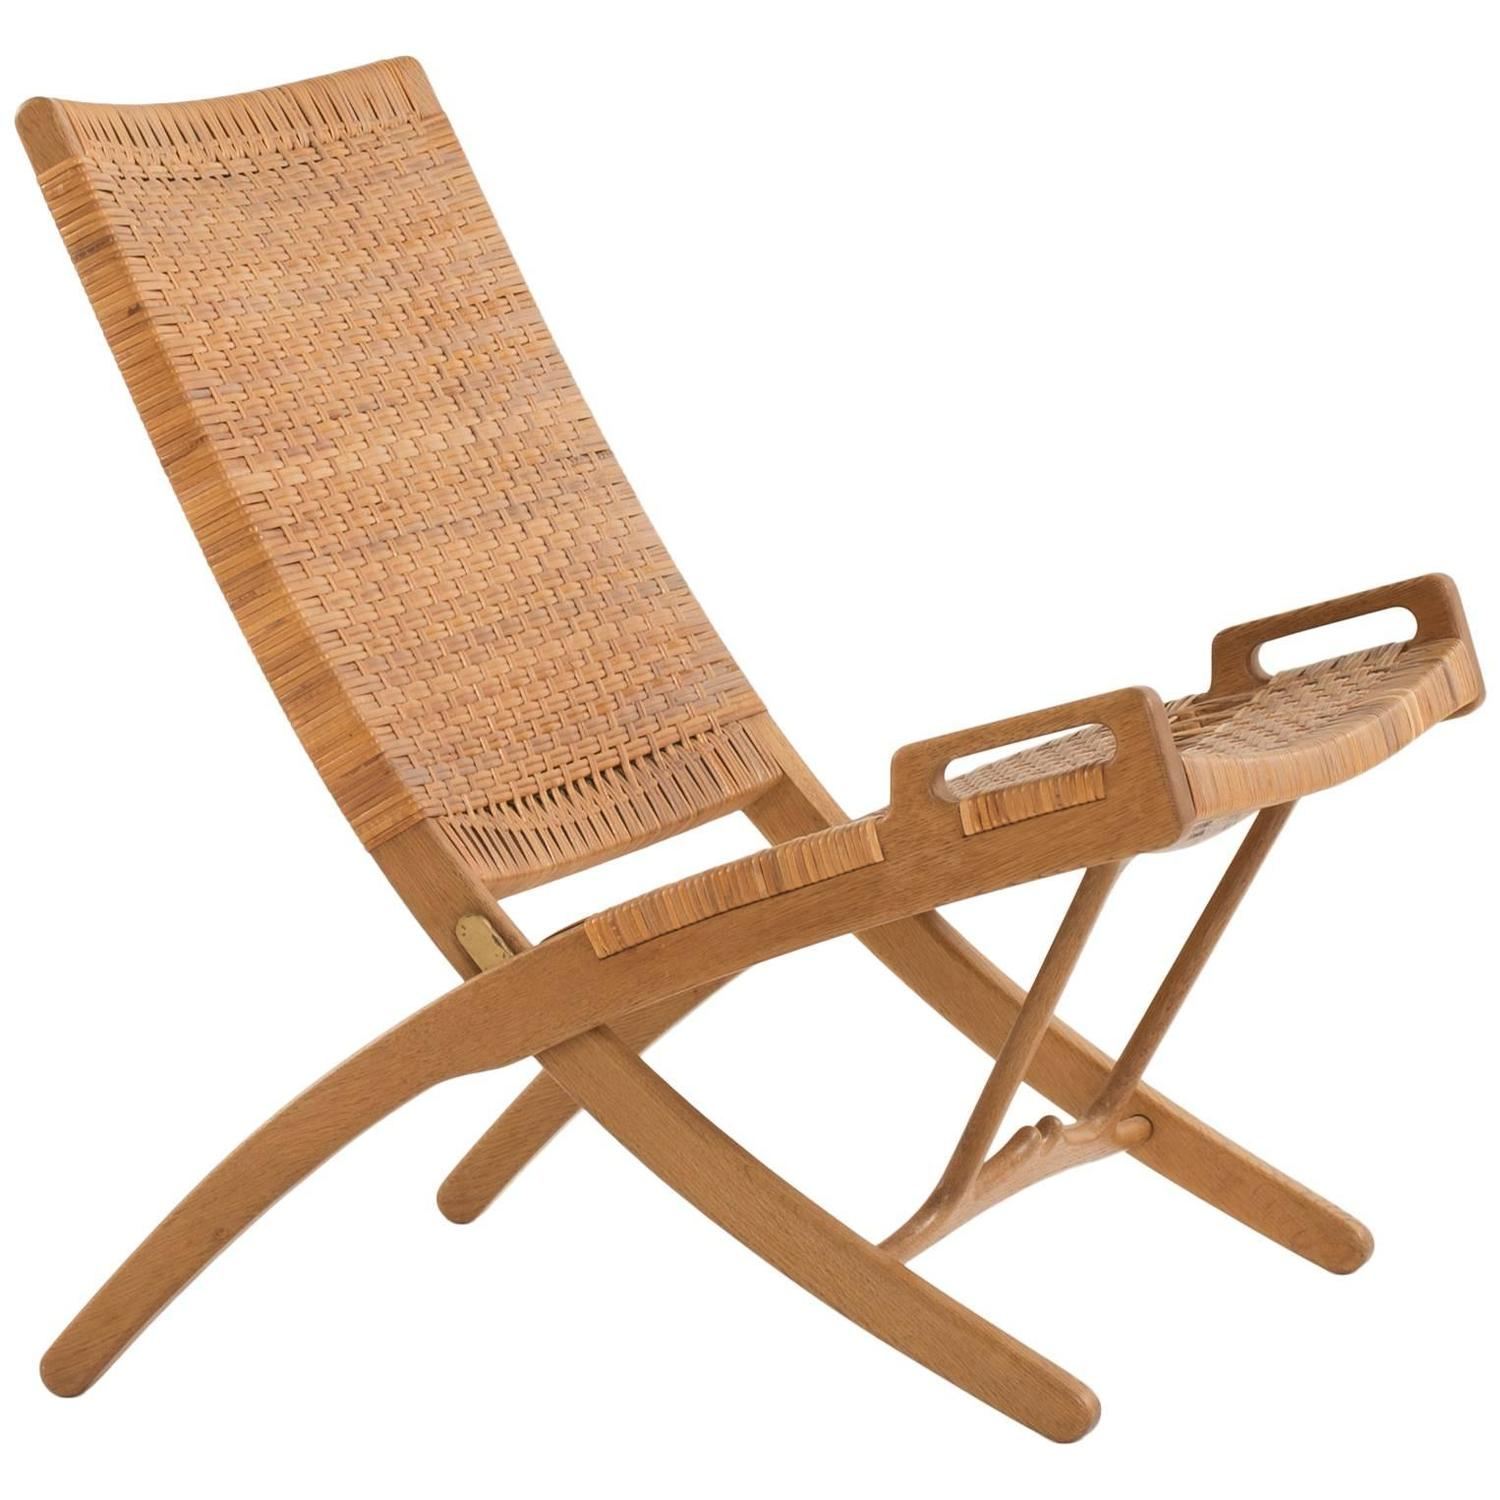 hans j wegner folding chair for johannes hansen for sale at 1stdibs. Black Bedroom Furniture Sets. Home Design Ideas